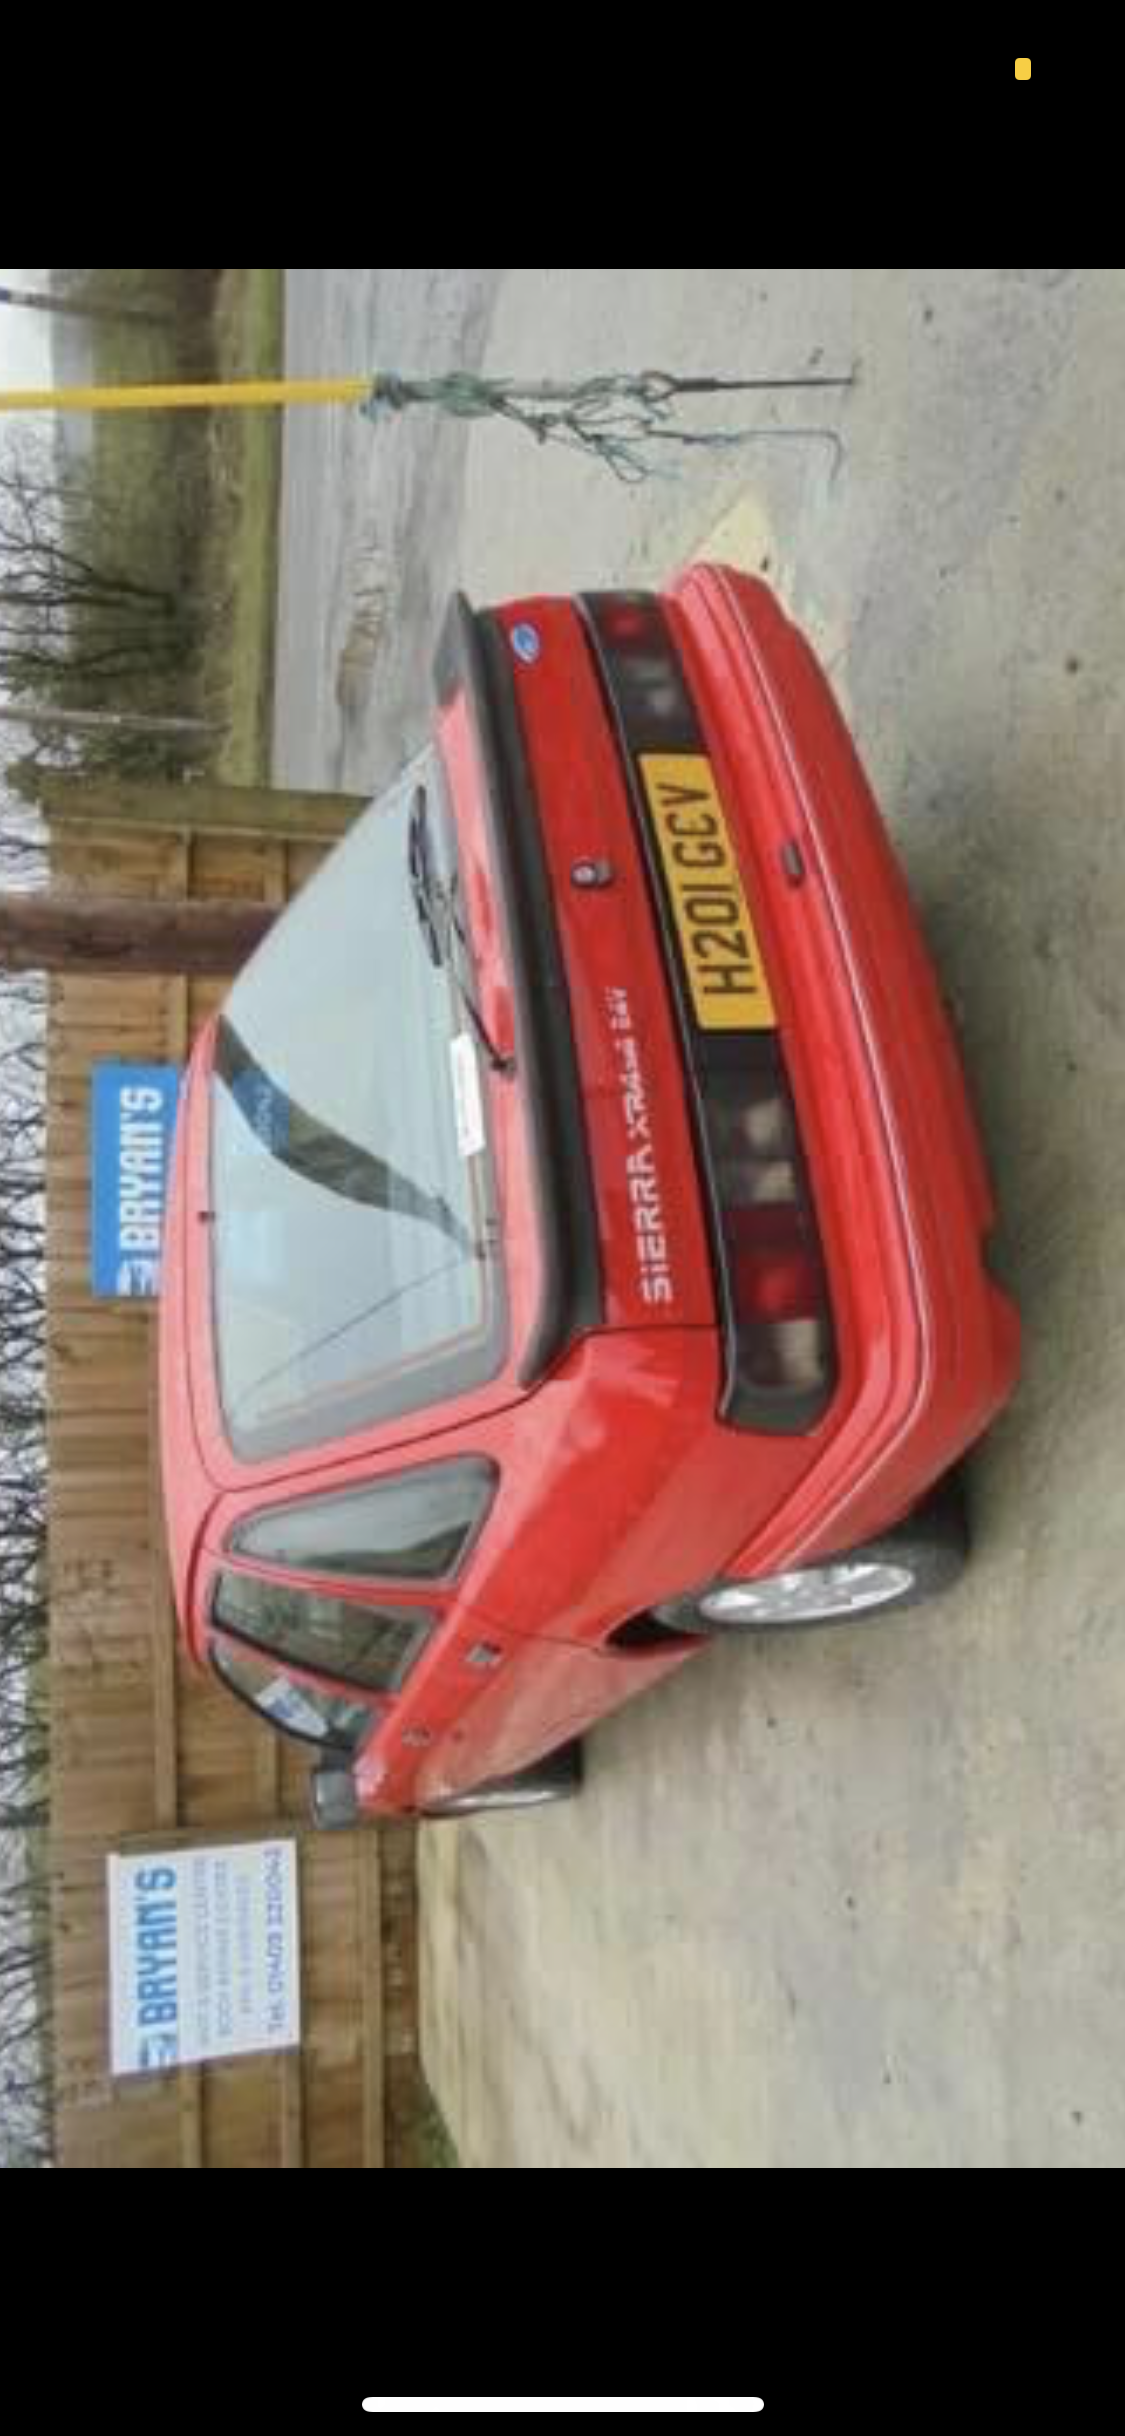 1990 Ford Sierra xr4x4 For Sale (picture 2 of 5)